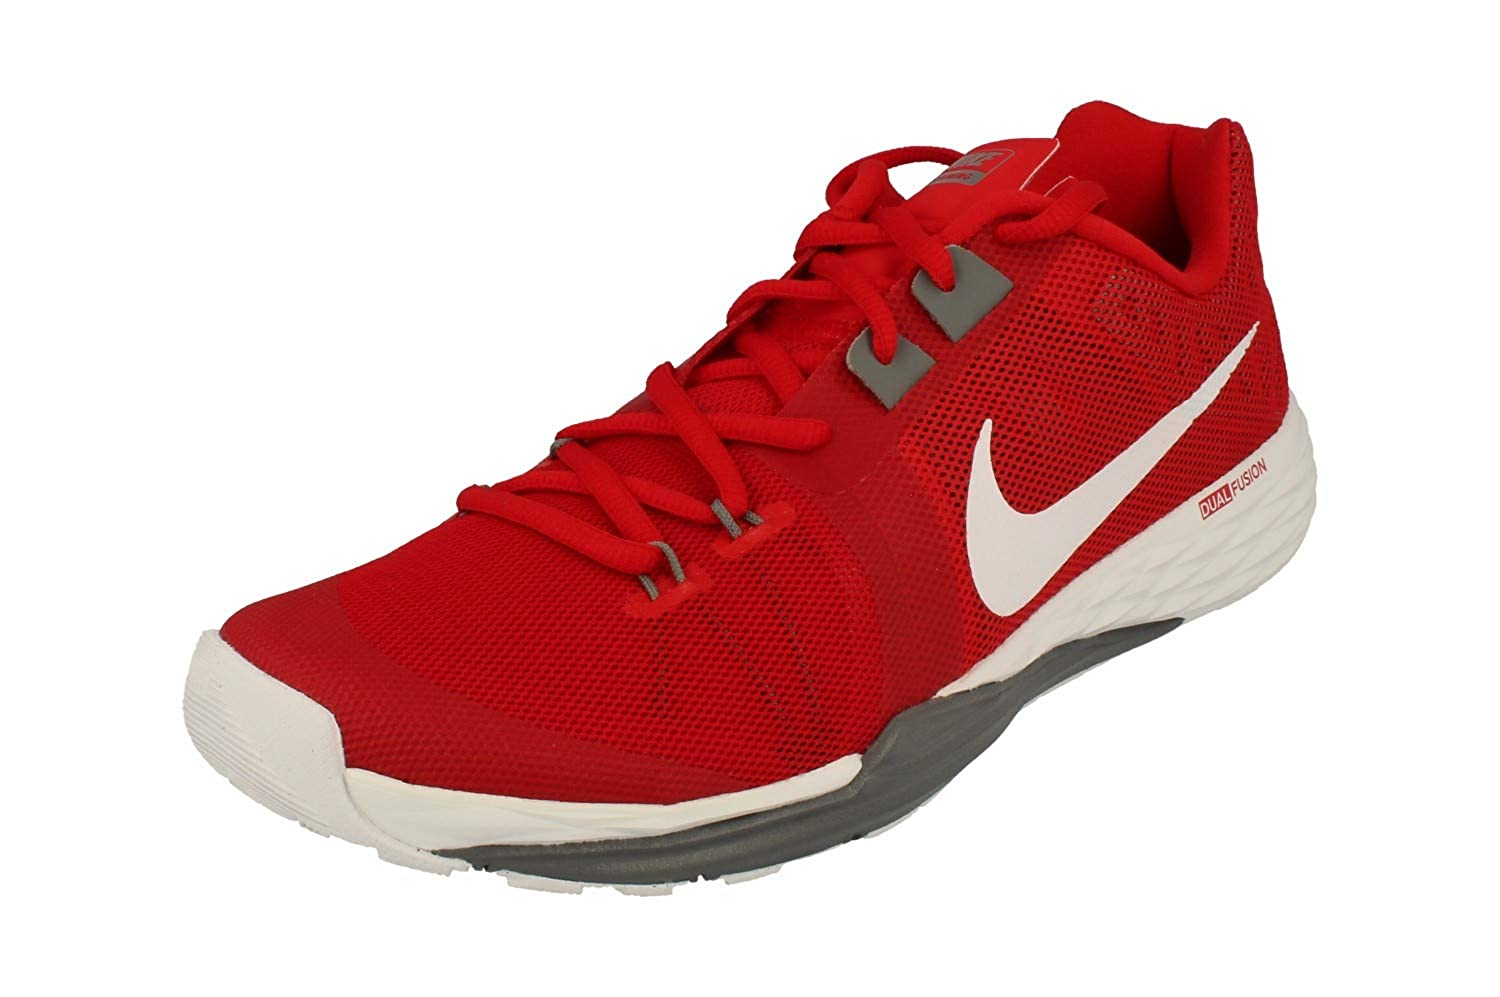 Nike Train Train Train Prime Iron DF 832219-600 c8ecf8